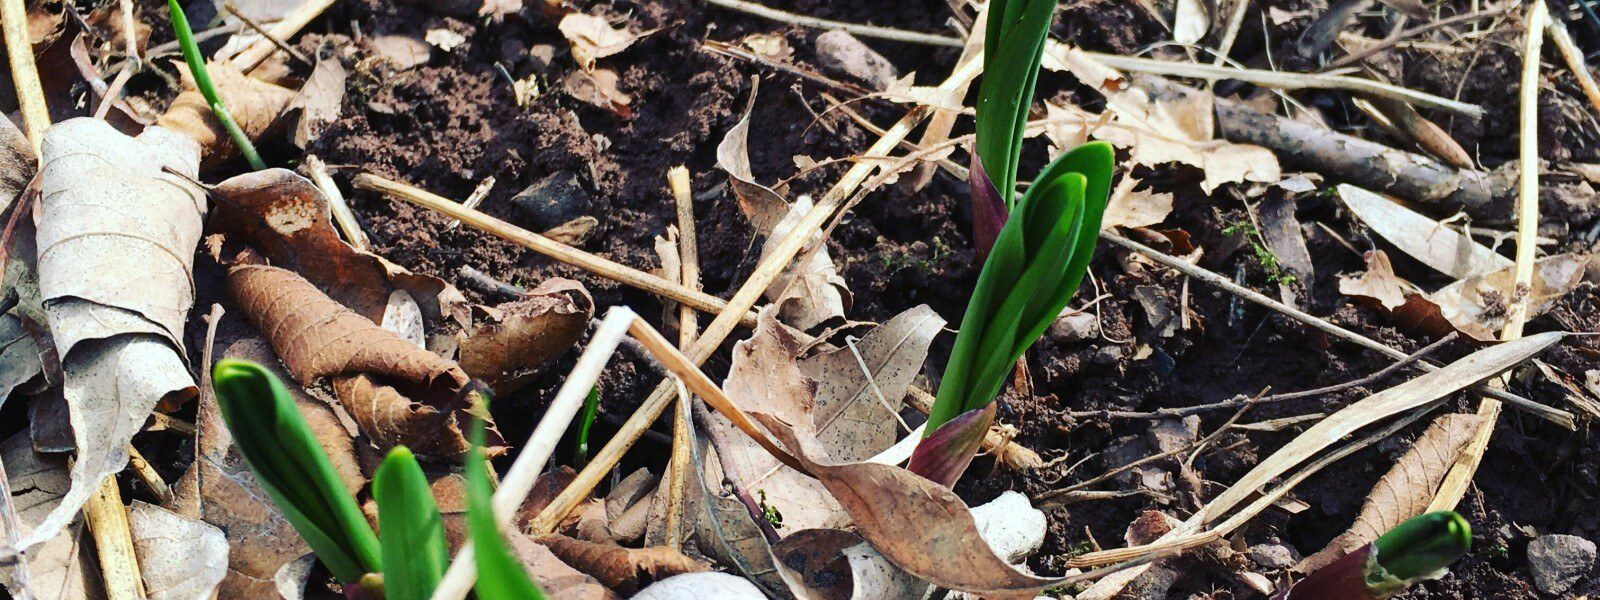 Ramps shoots in the forest floor.